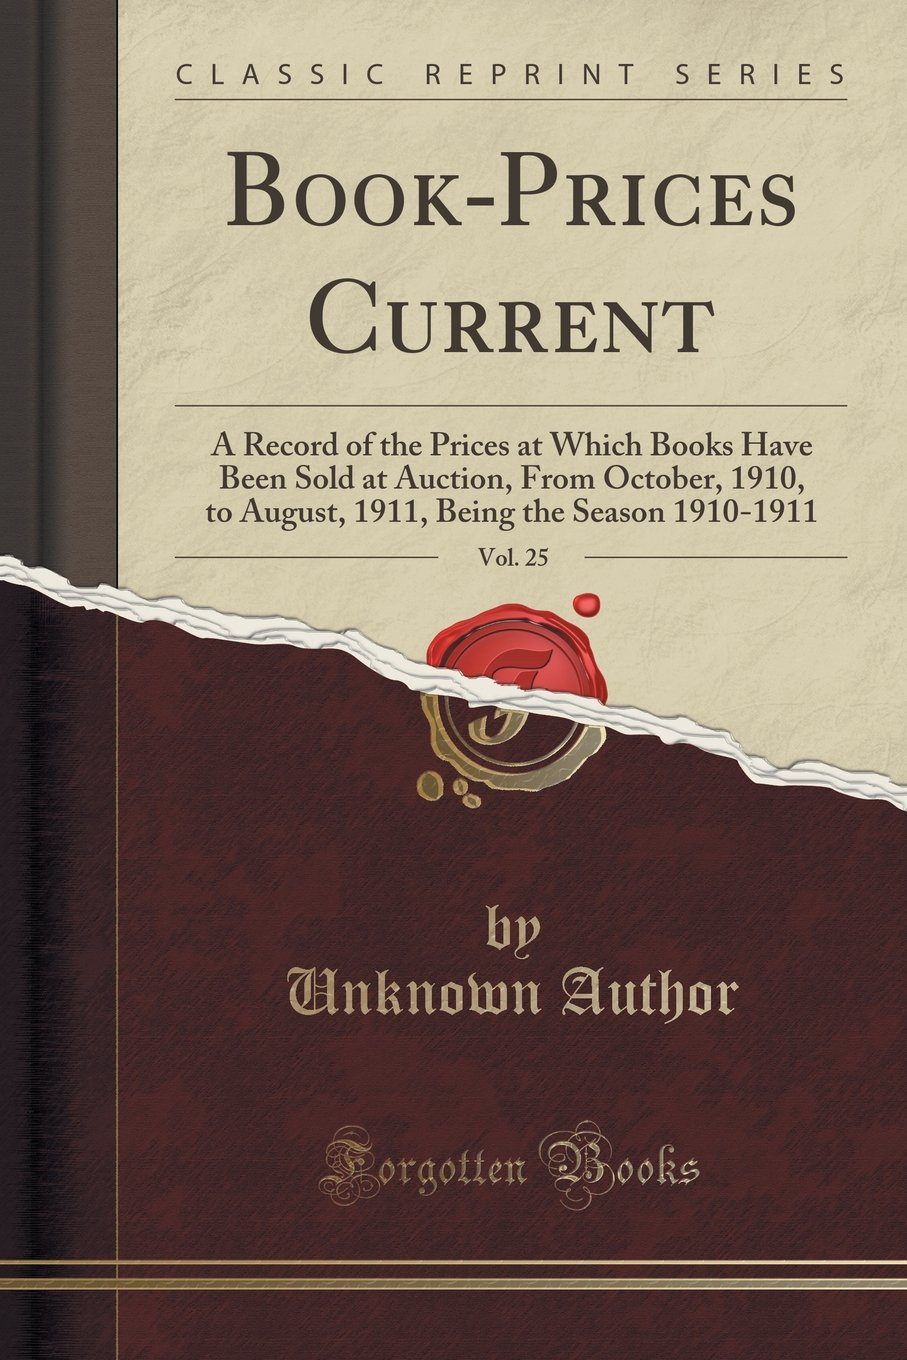 Download Book-Prices Current, Vol. 25: A Record of the Prices at Which Books Have Been Sold at Auction, From October, 1910, to August, 1911, Being the Season 1910-1911 (Classic Reprint) ebook